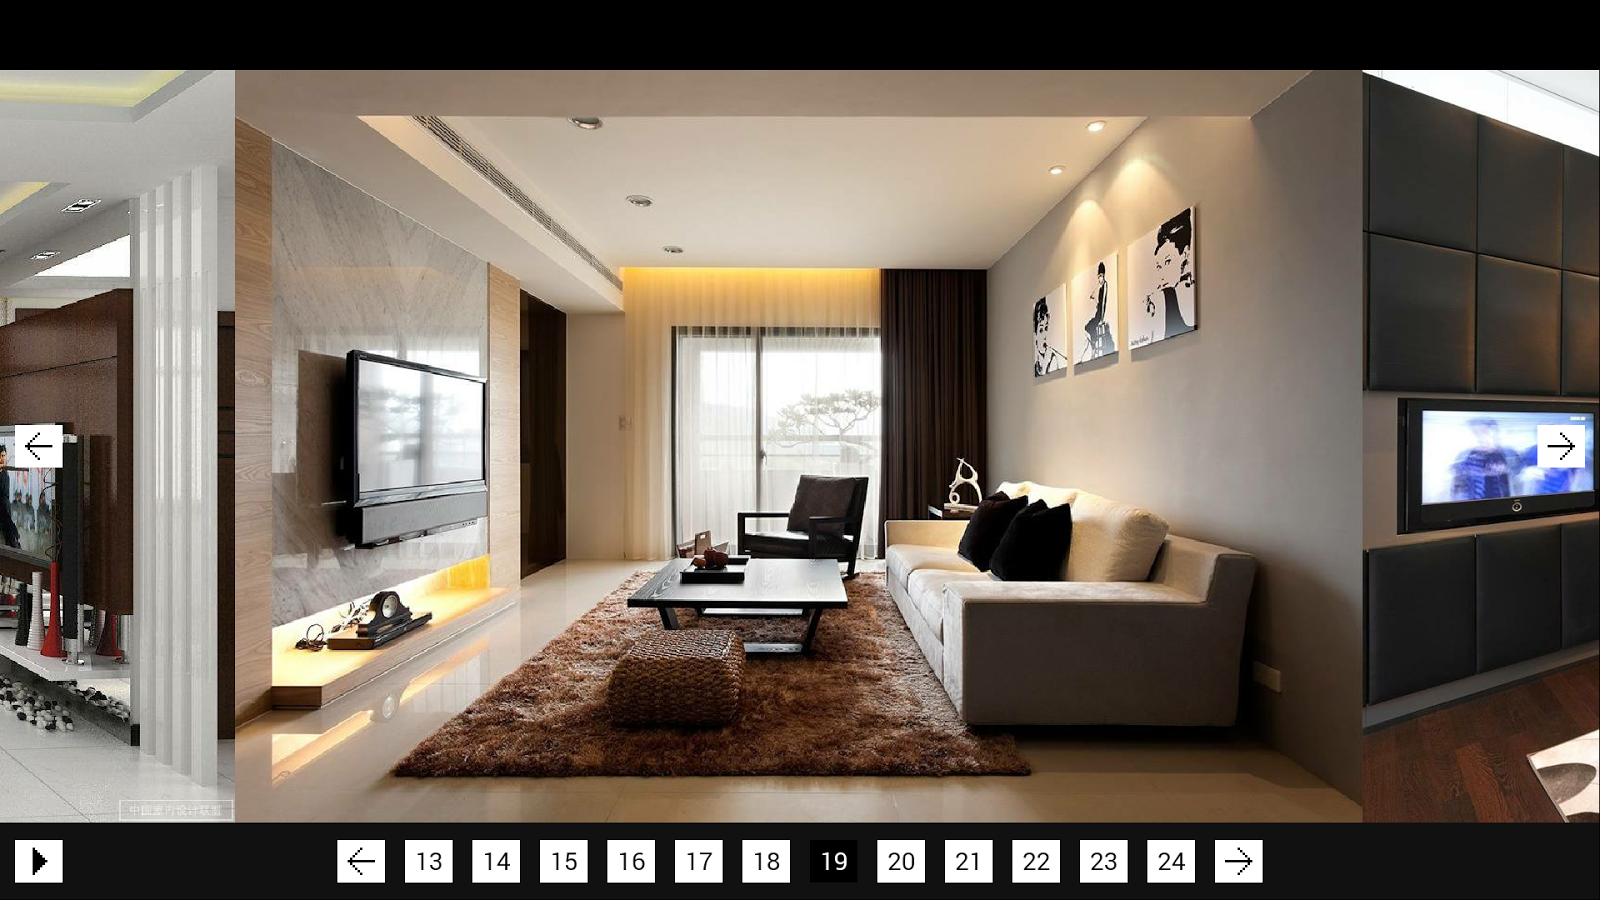 Home interior design android apps on google play - Interior home design pic ...